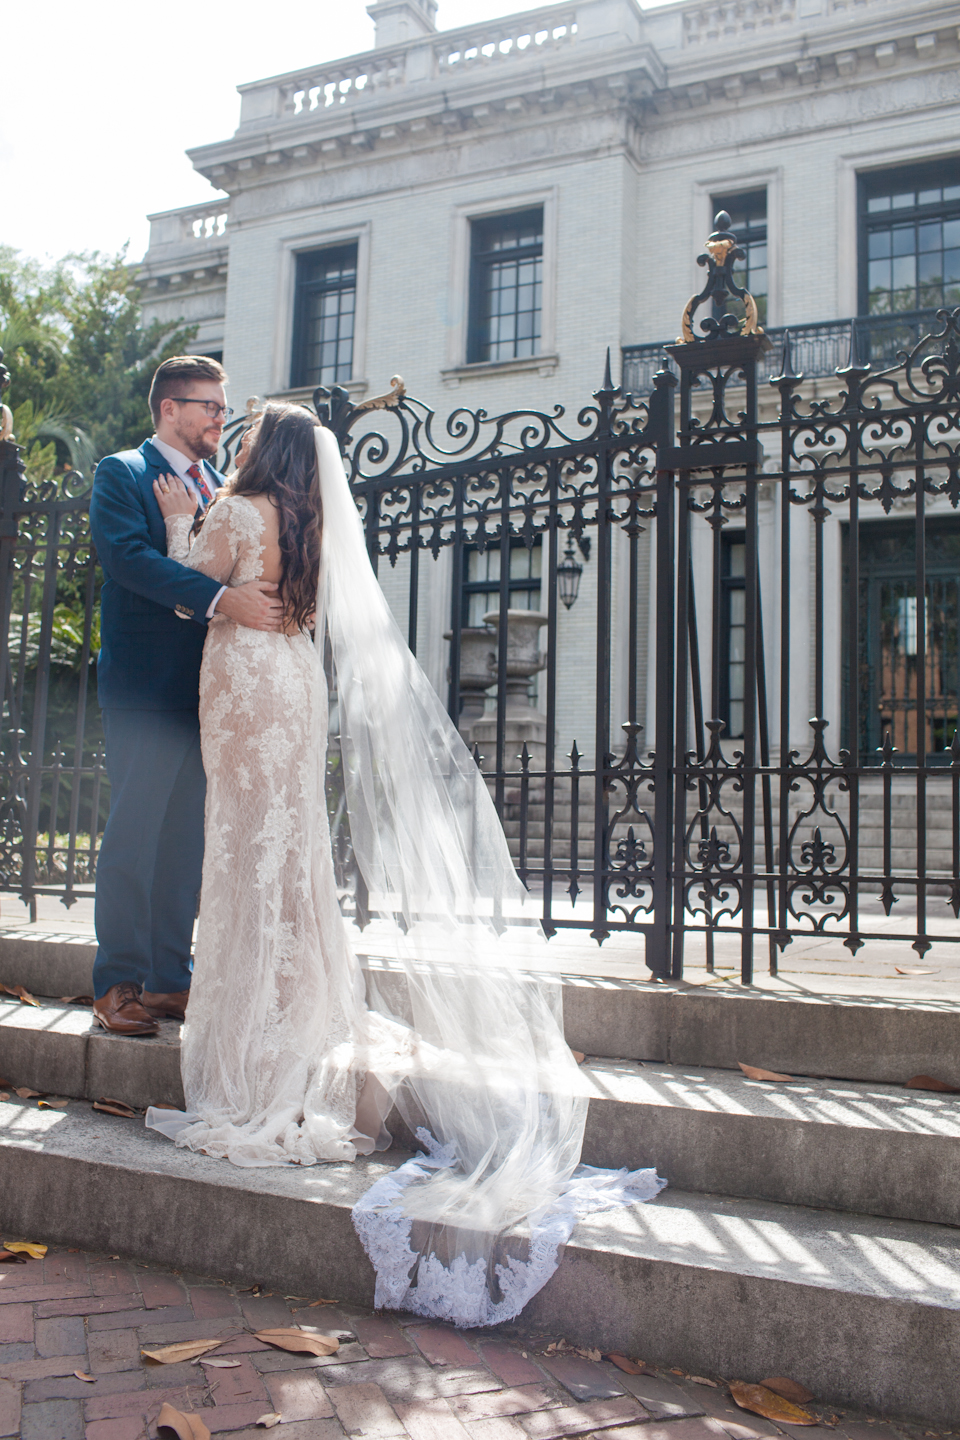 savannahweddingphotographercharlestonweddingphotographerwormsloewedding18.jpg